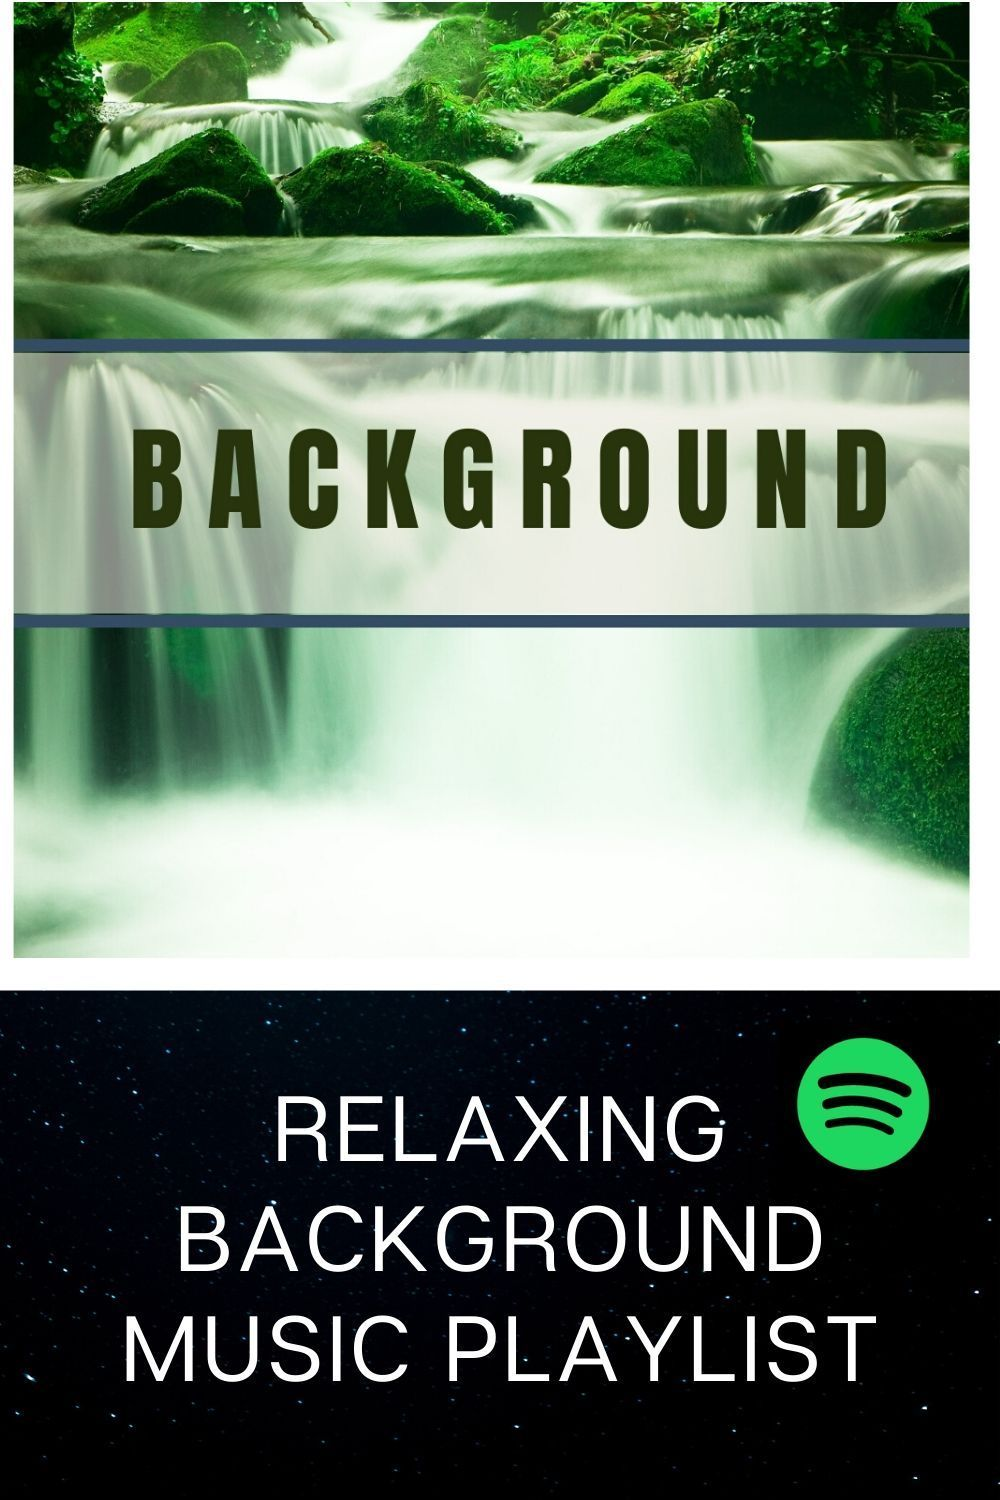 The Best 2020 Relaxing Background Music Playlist Spotify Playlist Music Playlist Spotify